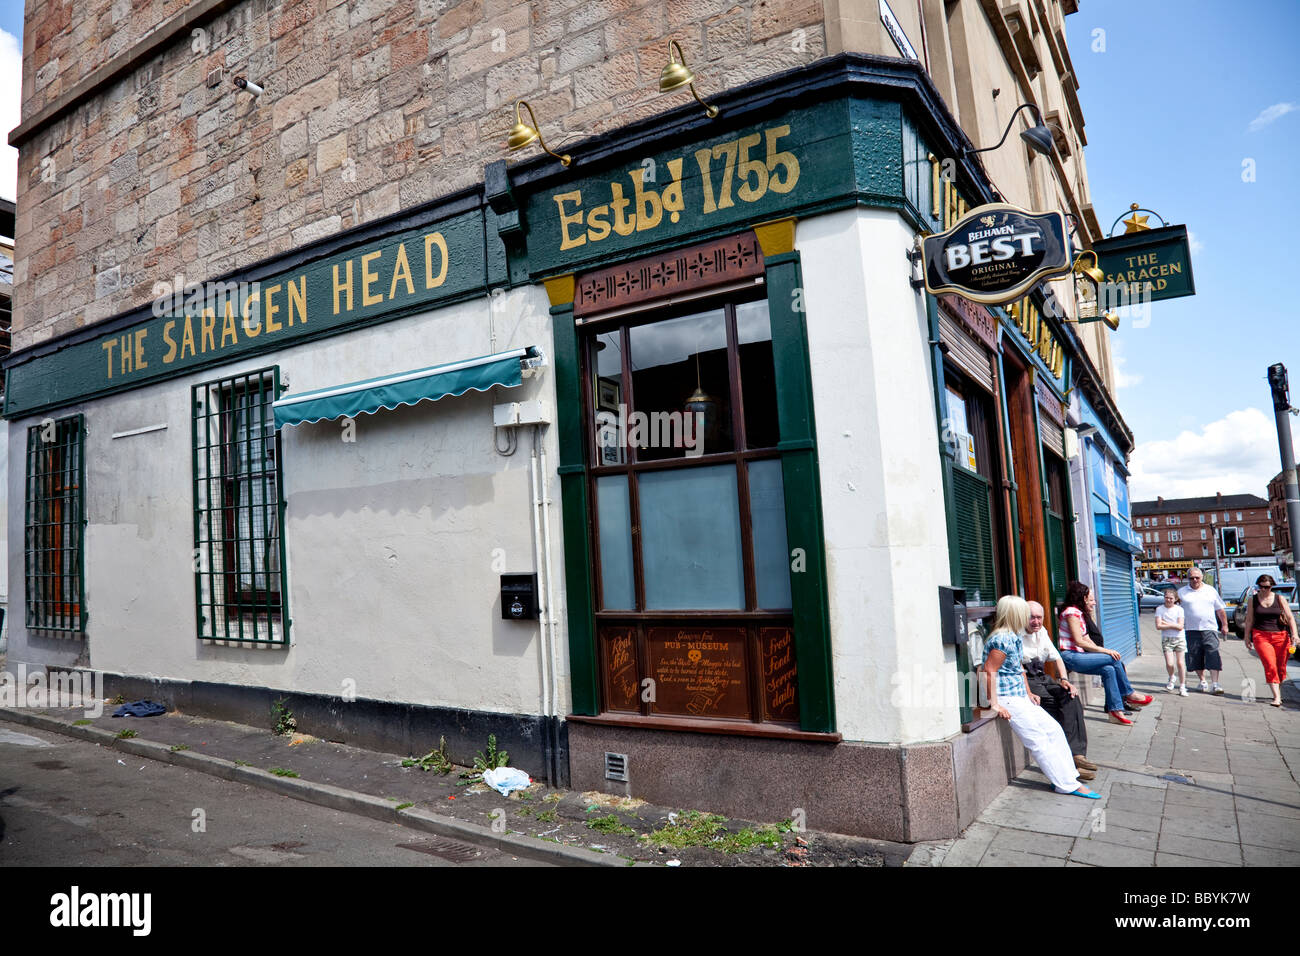 The Saracen Head, or Sarry Heid, a famous old pub in the Gallowgate area of the East End of Glasgow. - Stock Image